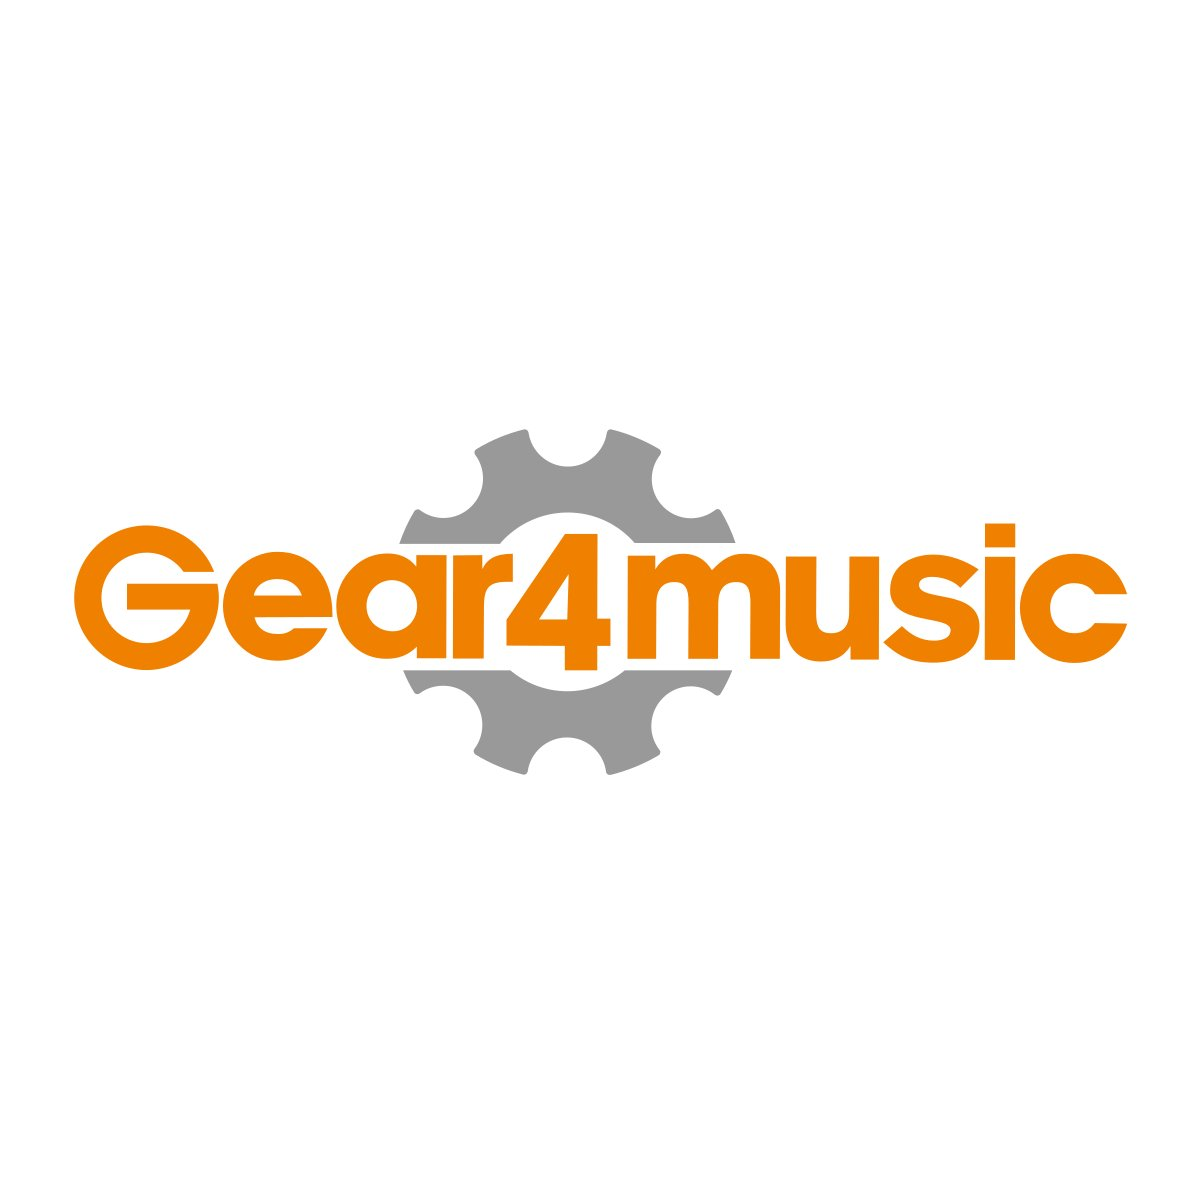 Lámpara de Atril de Gear4music - 9 LED